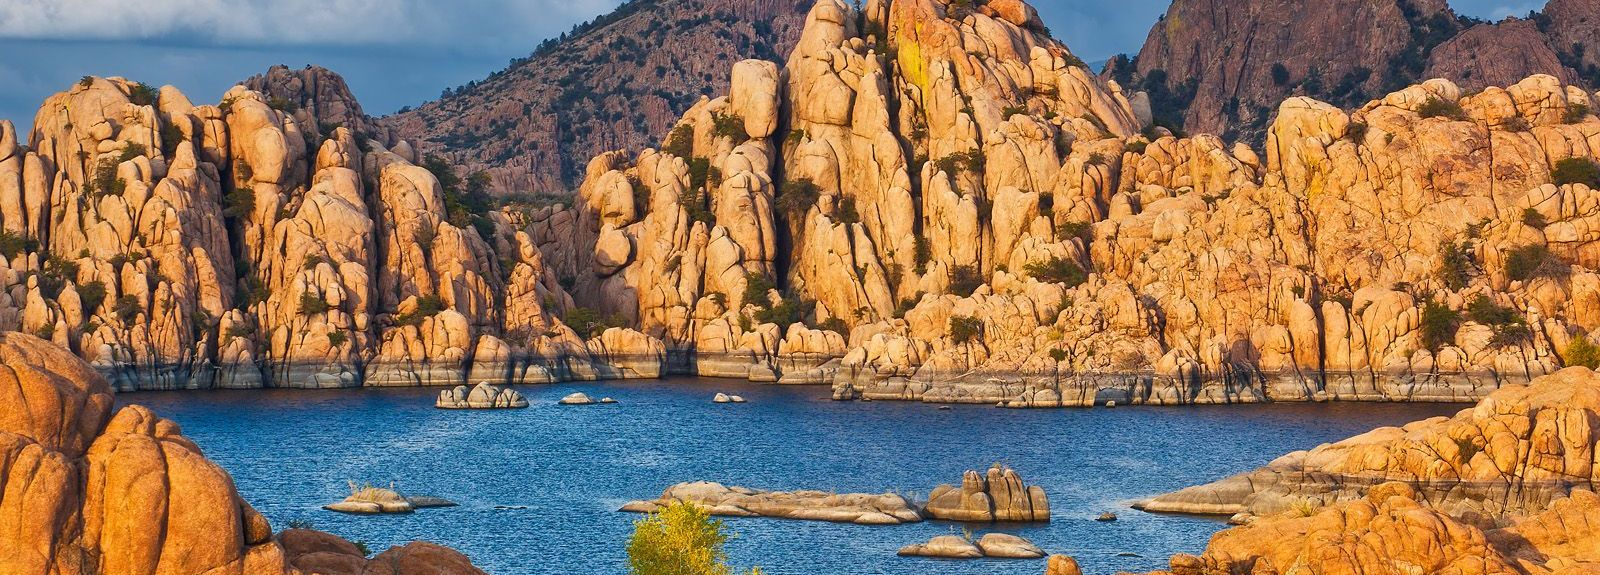 Prescott, Arizona, United States of America